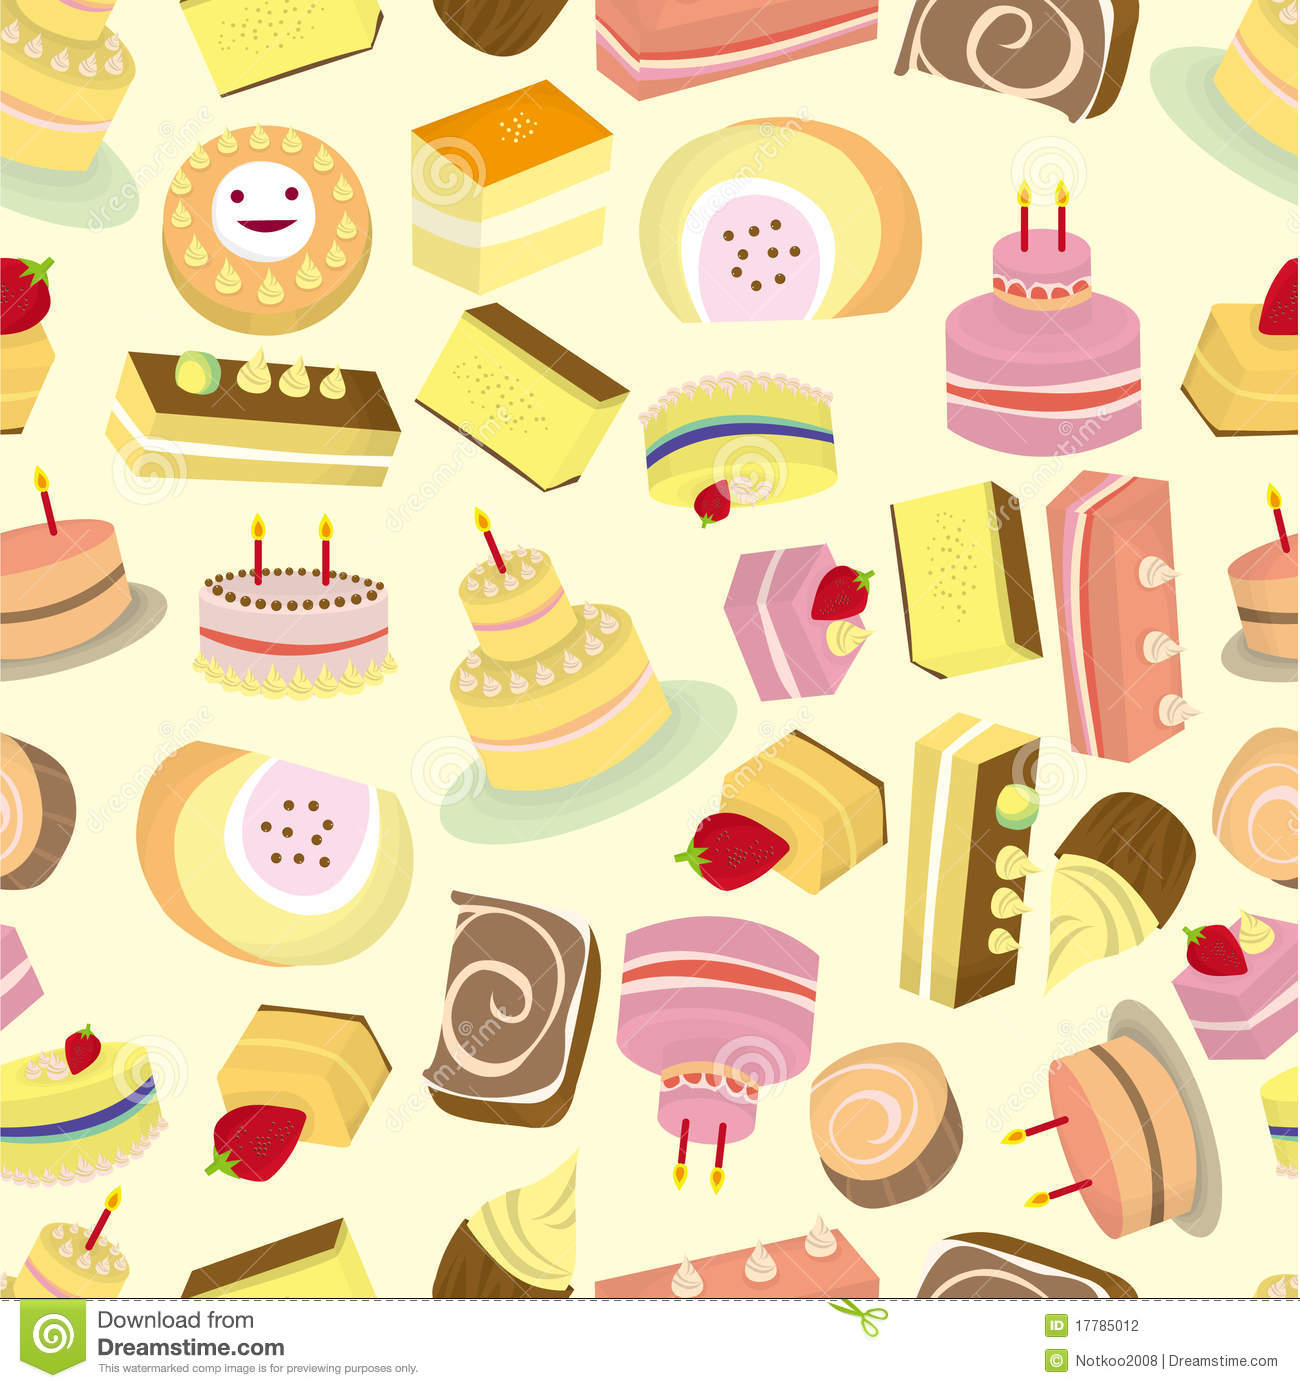 Design Patterns Of Cake : Seamless Cakes Pattern Stock Photography - Image: 17785012